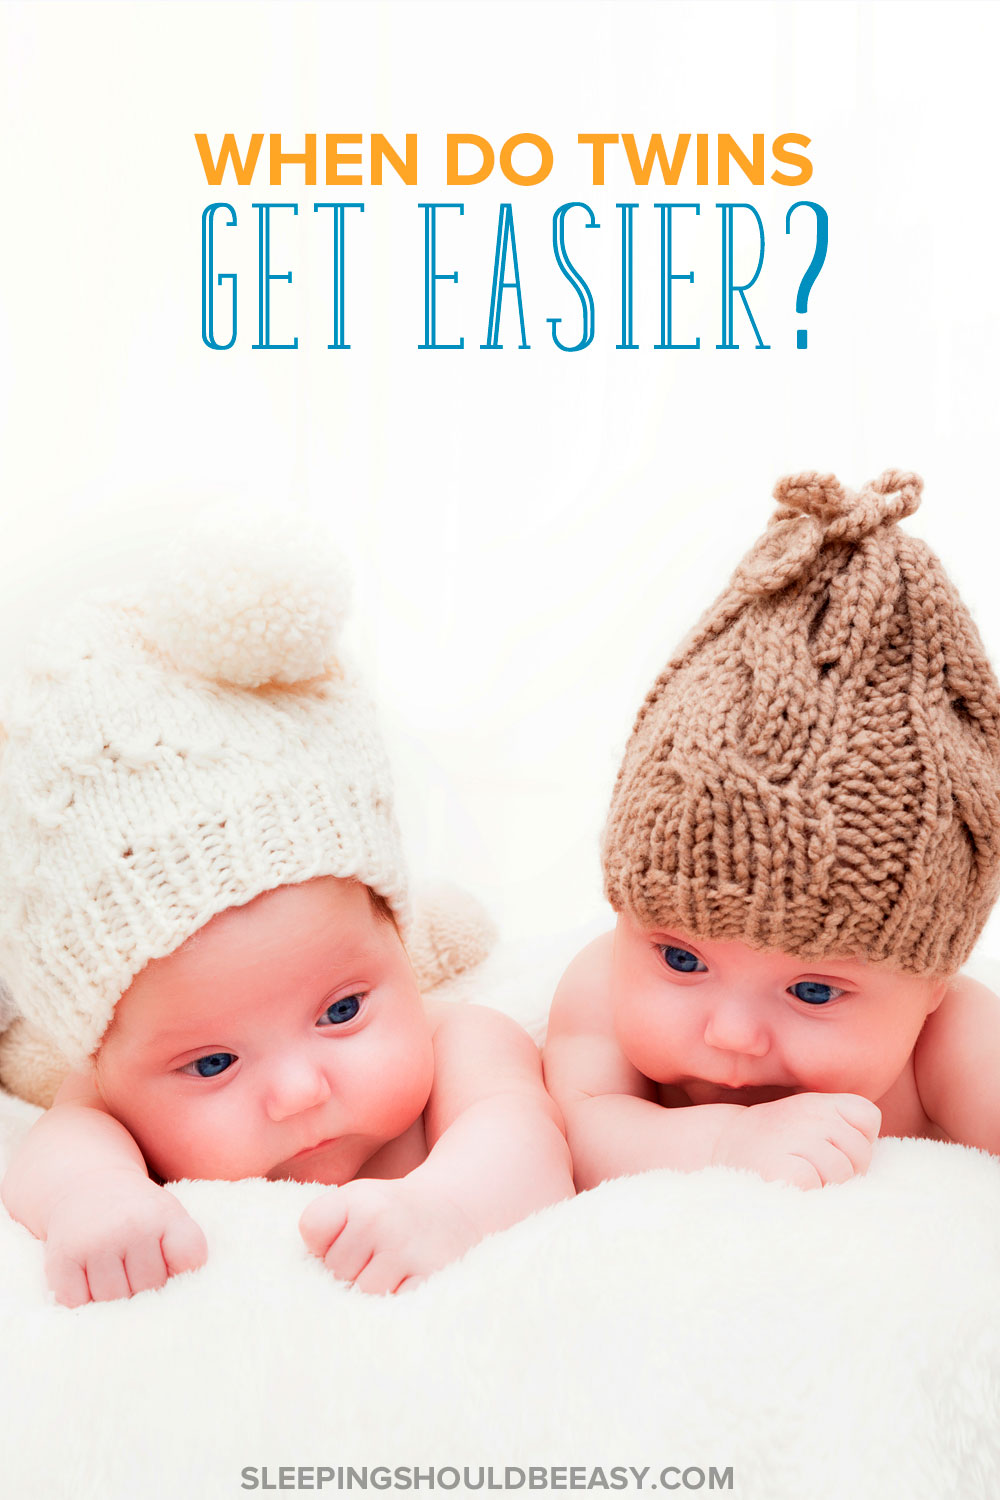 When do twins get easier for moms of multiples? Here are the milestones that mark when it gets easier as well tips on how to manage.